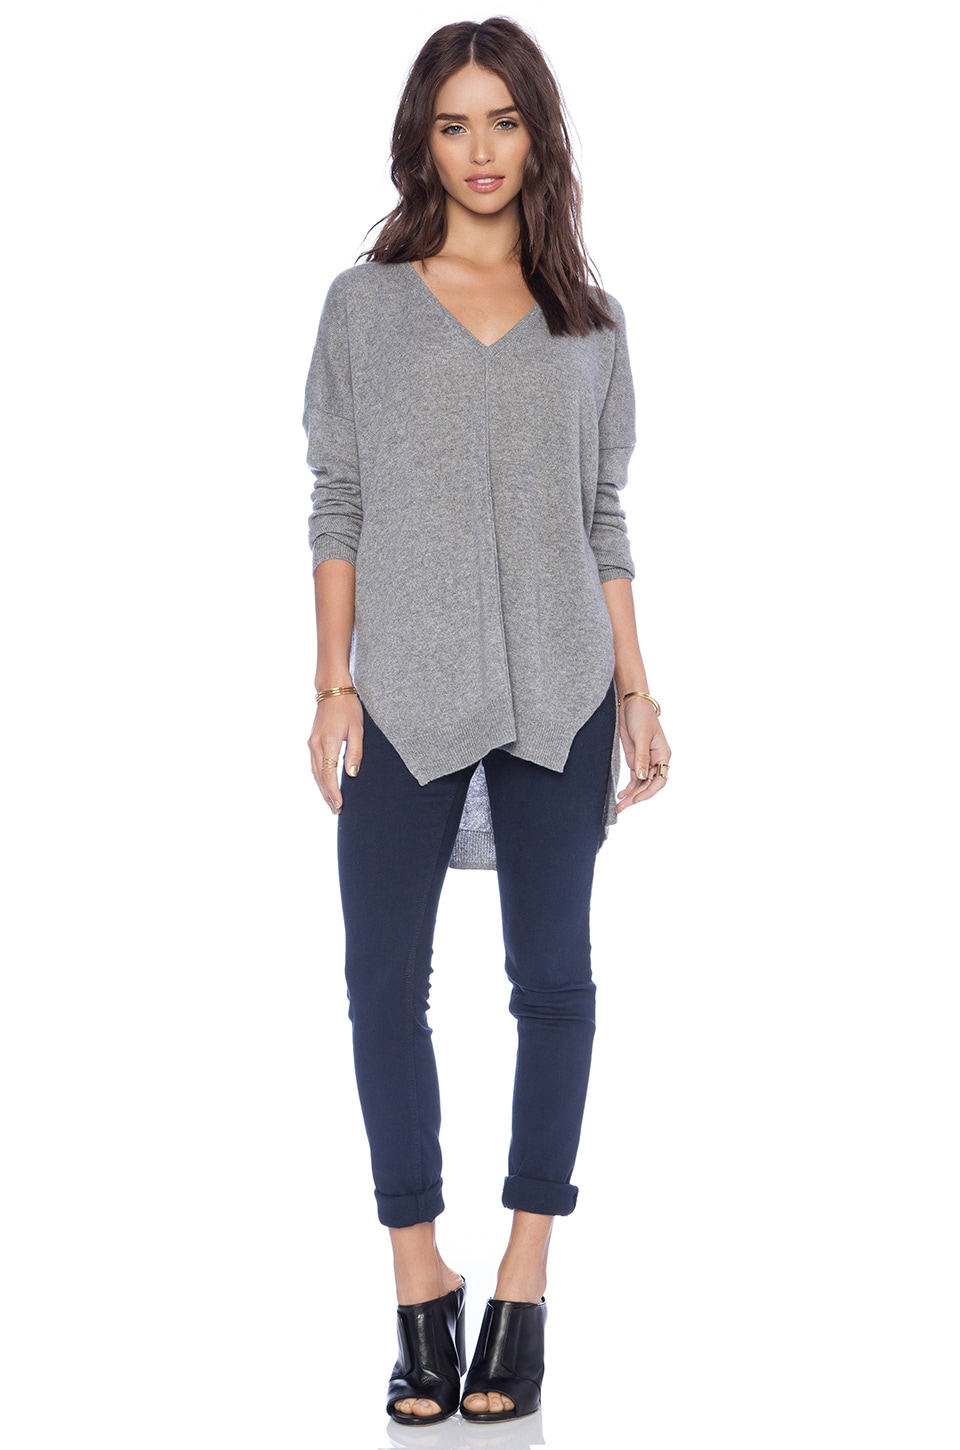 Autumn Cashmere Hi Lo Slashed Sweater in Cement